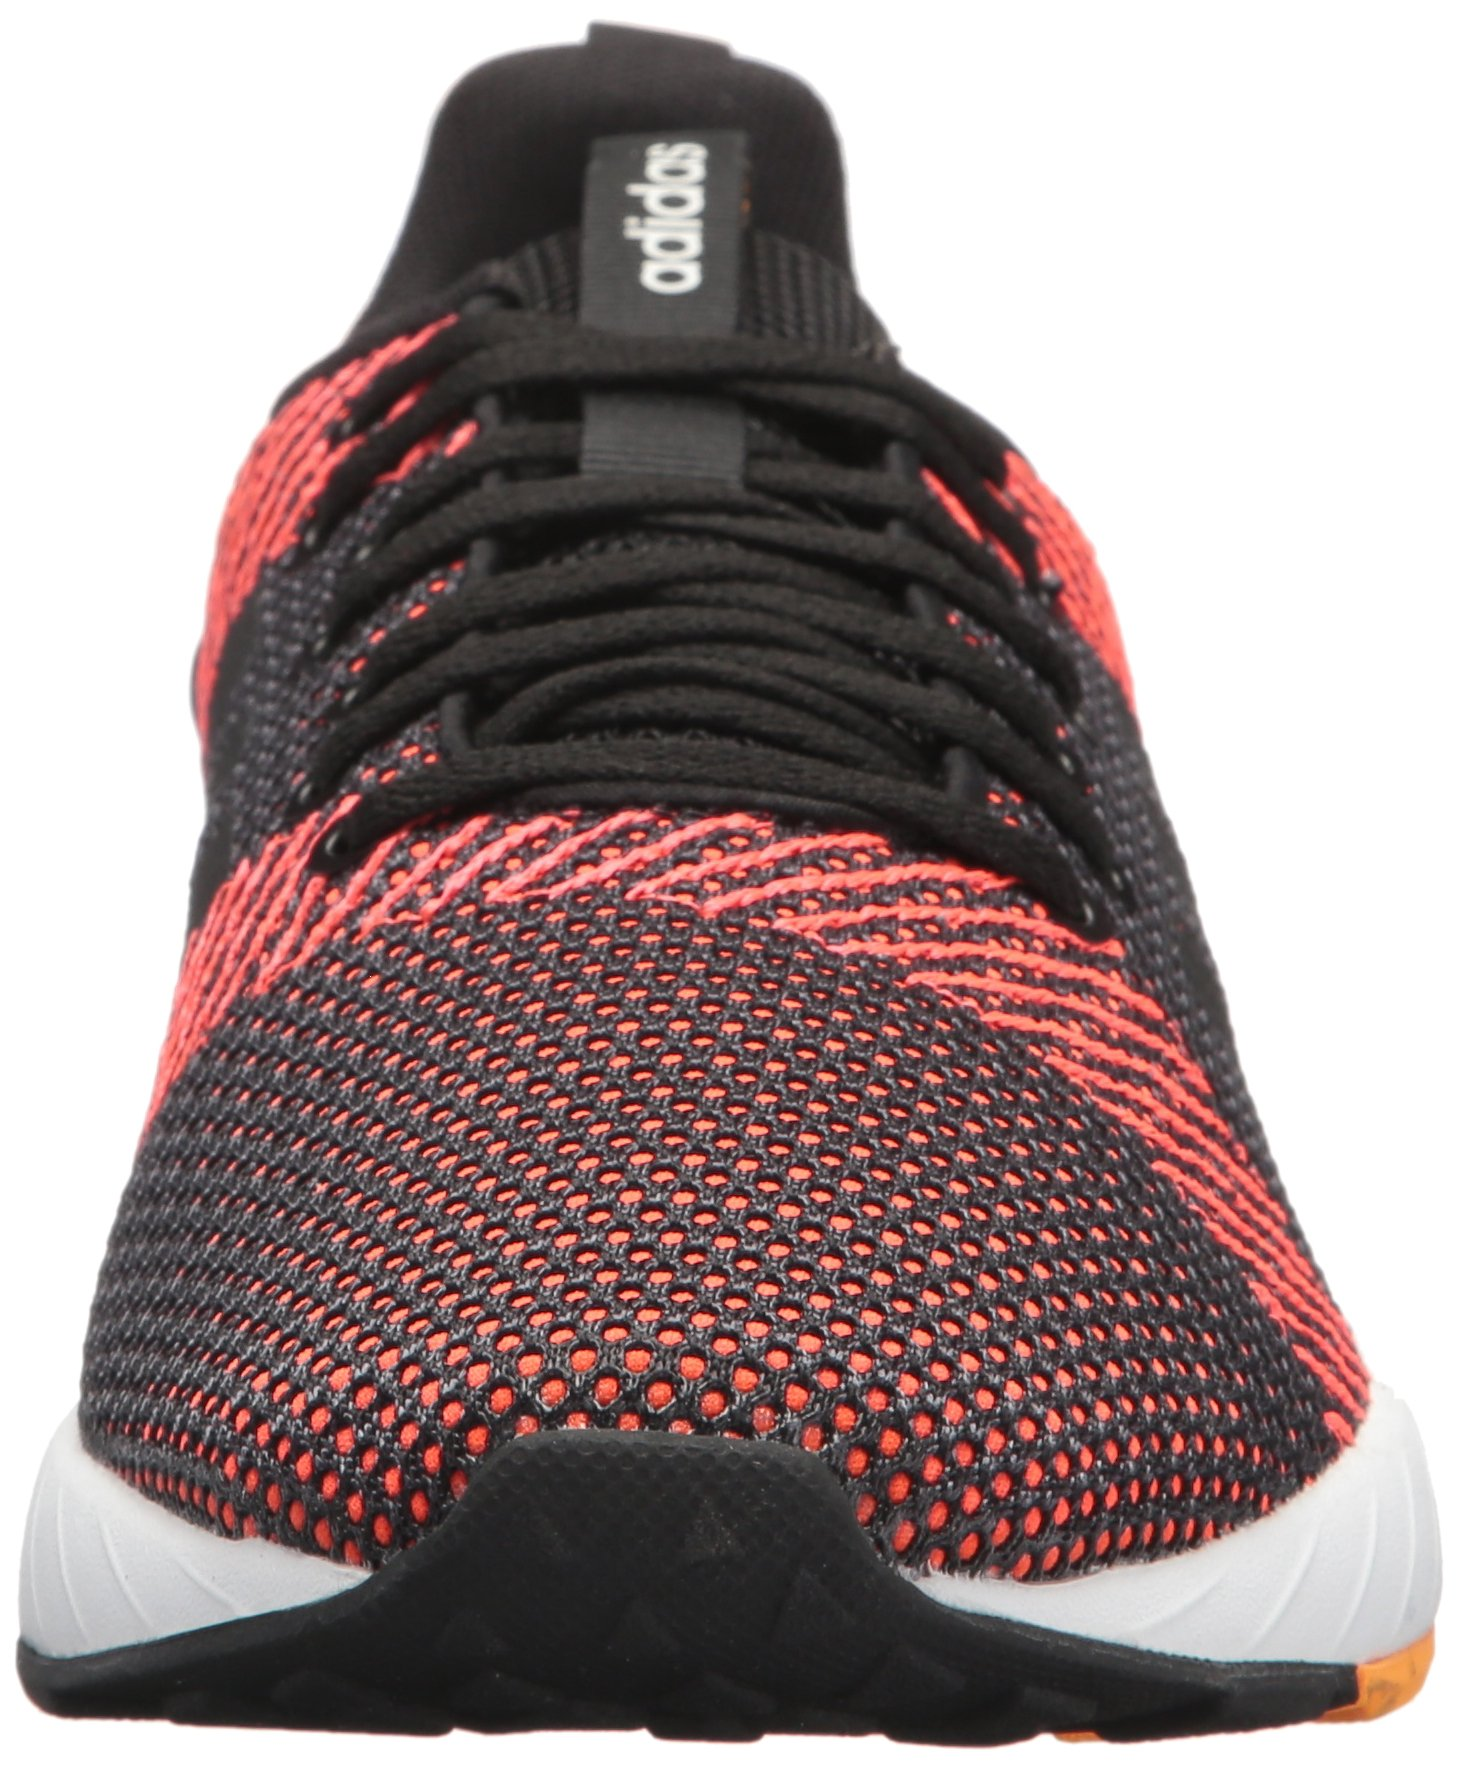 adidas Men's Questar BYD Running Shoe Black/White/Solar red 6.5 M US by adidas (Image #4)